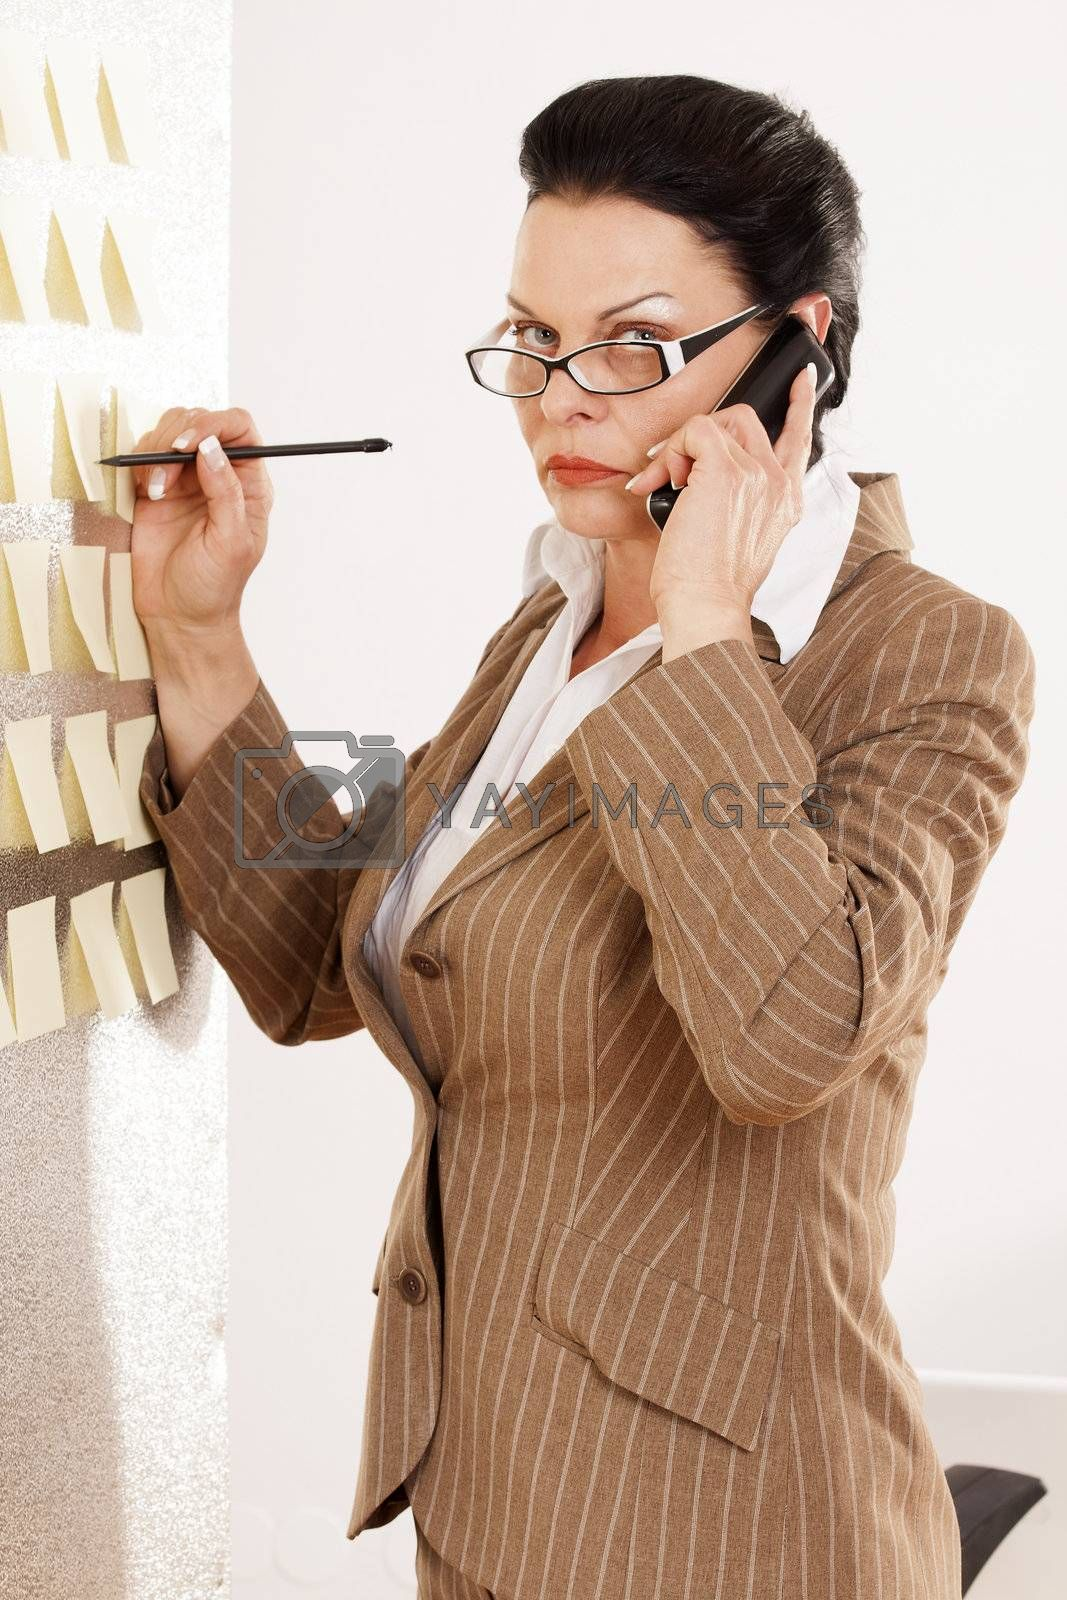 Woman writes to a wall on memos and phone calls